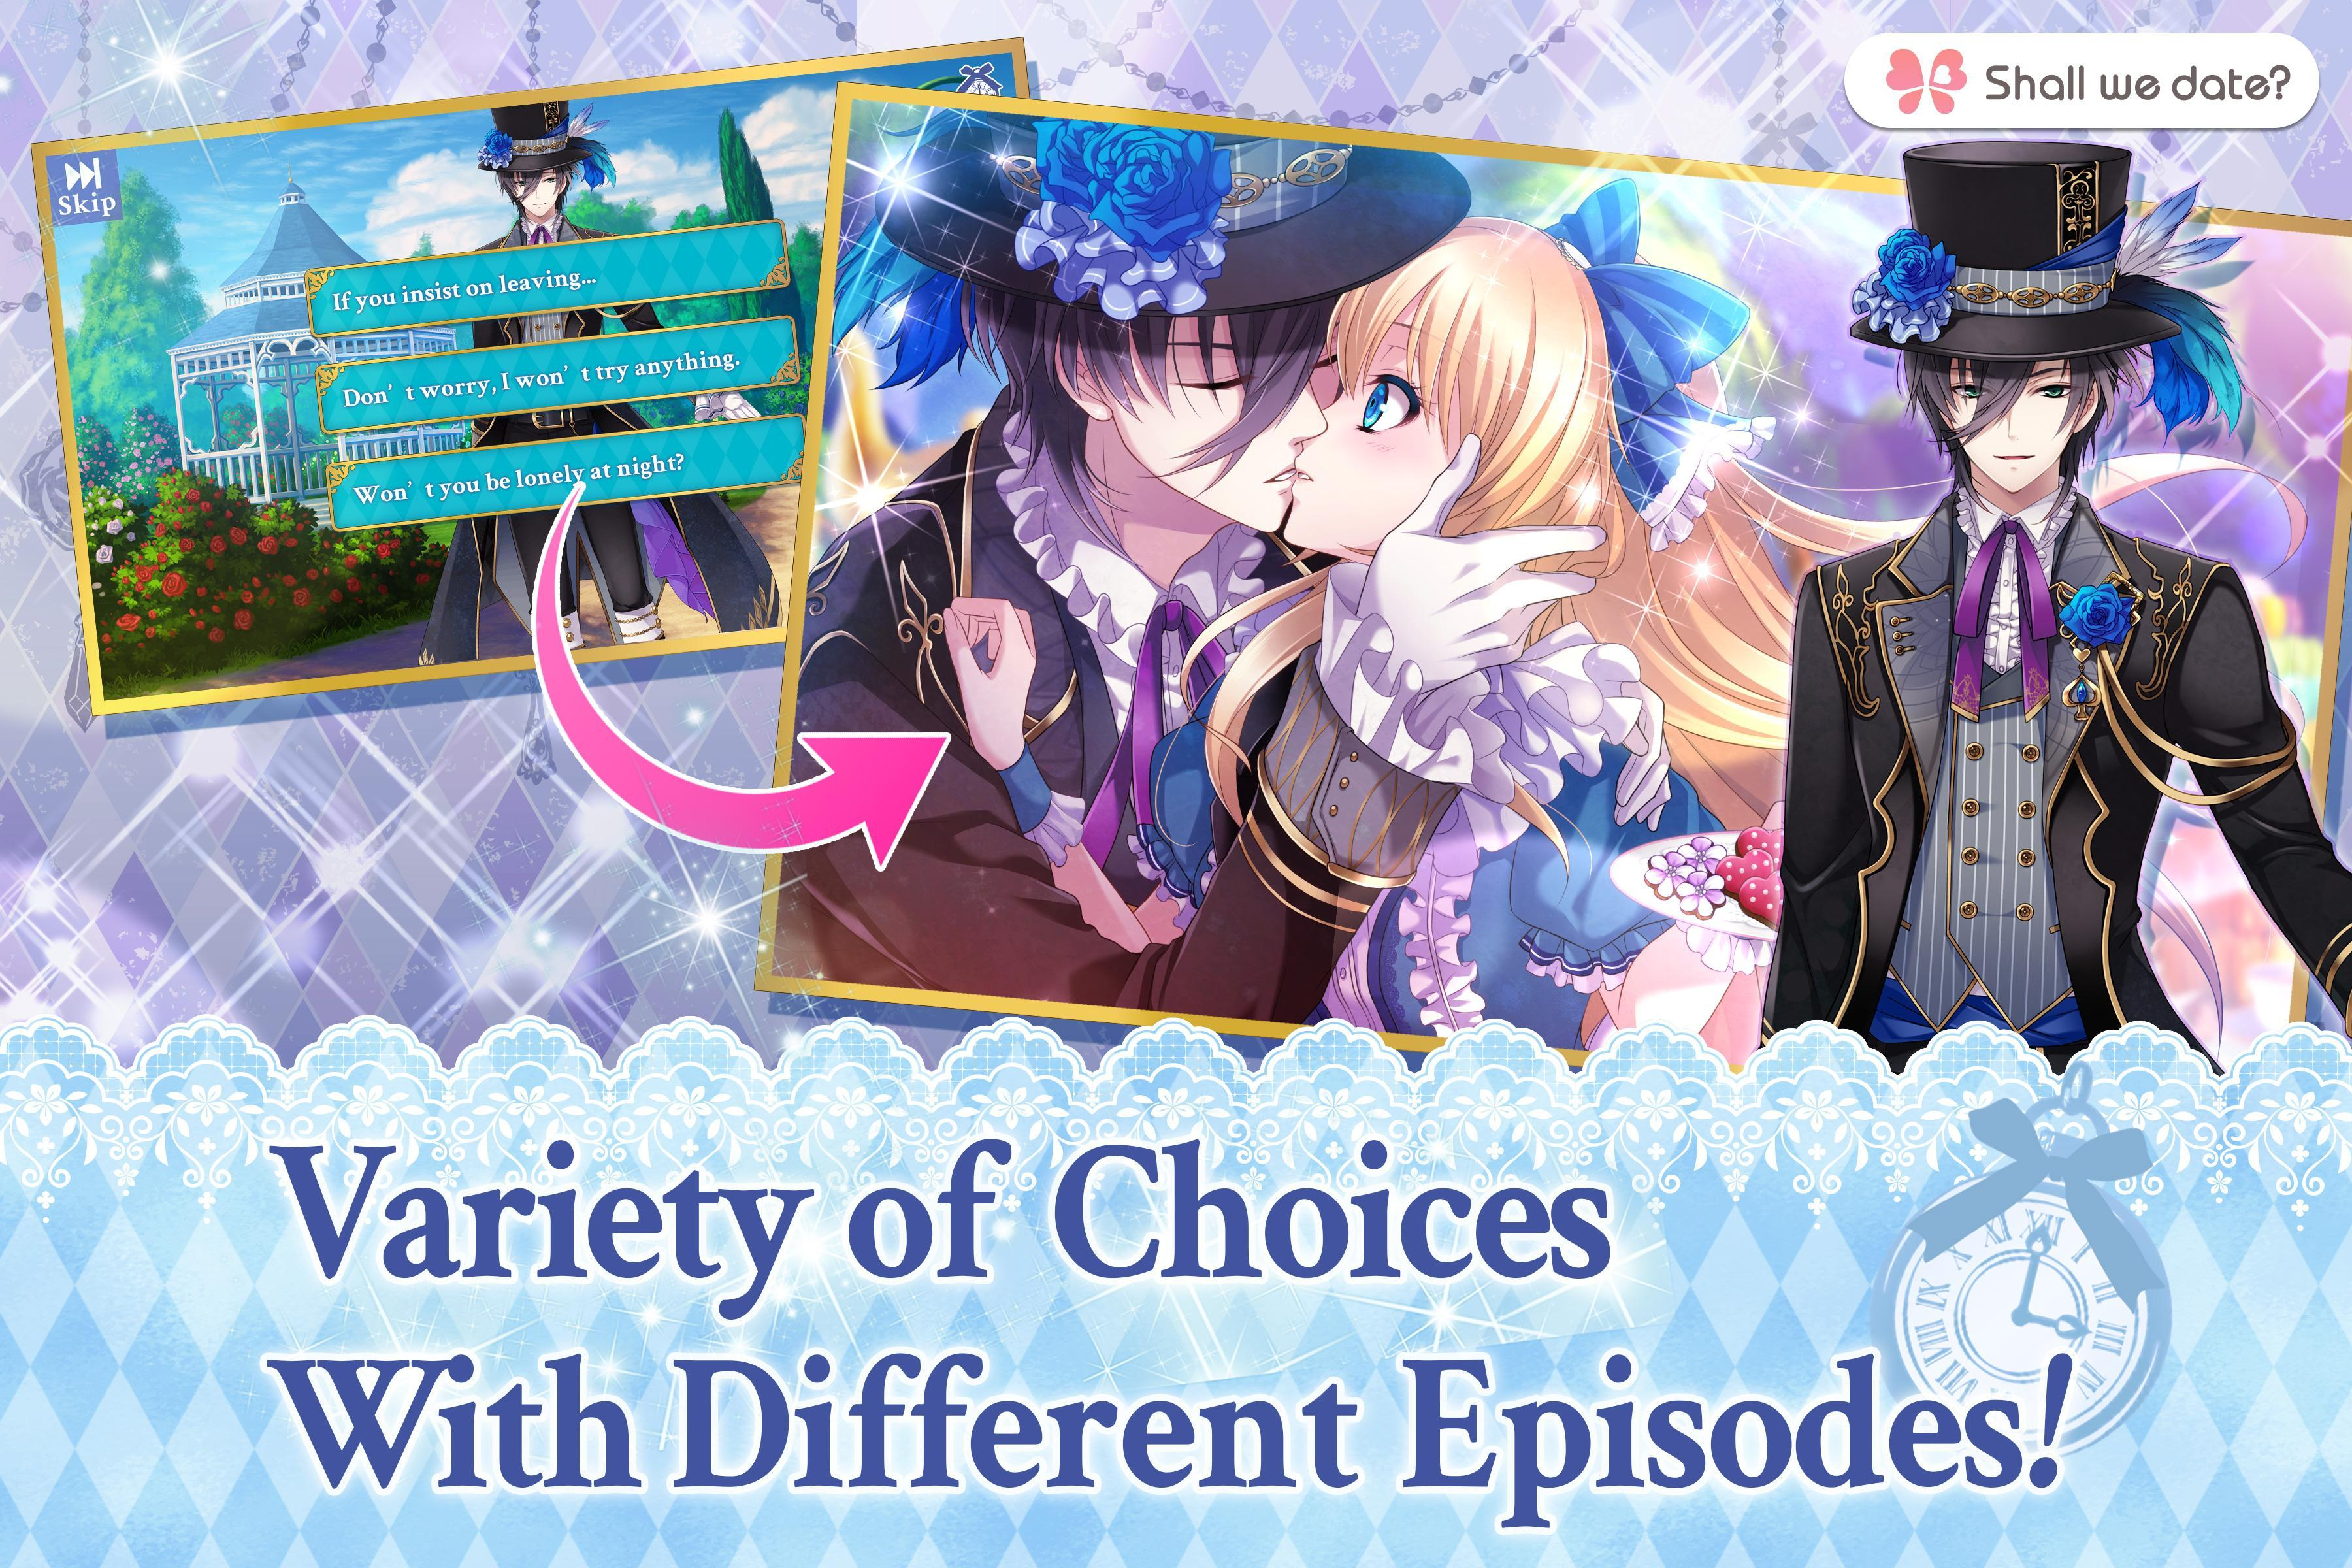 Lost Alice - otome game/dating sim #shall we date 1.5.1 Screenshot 3